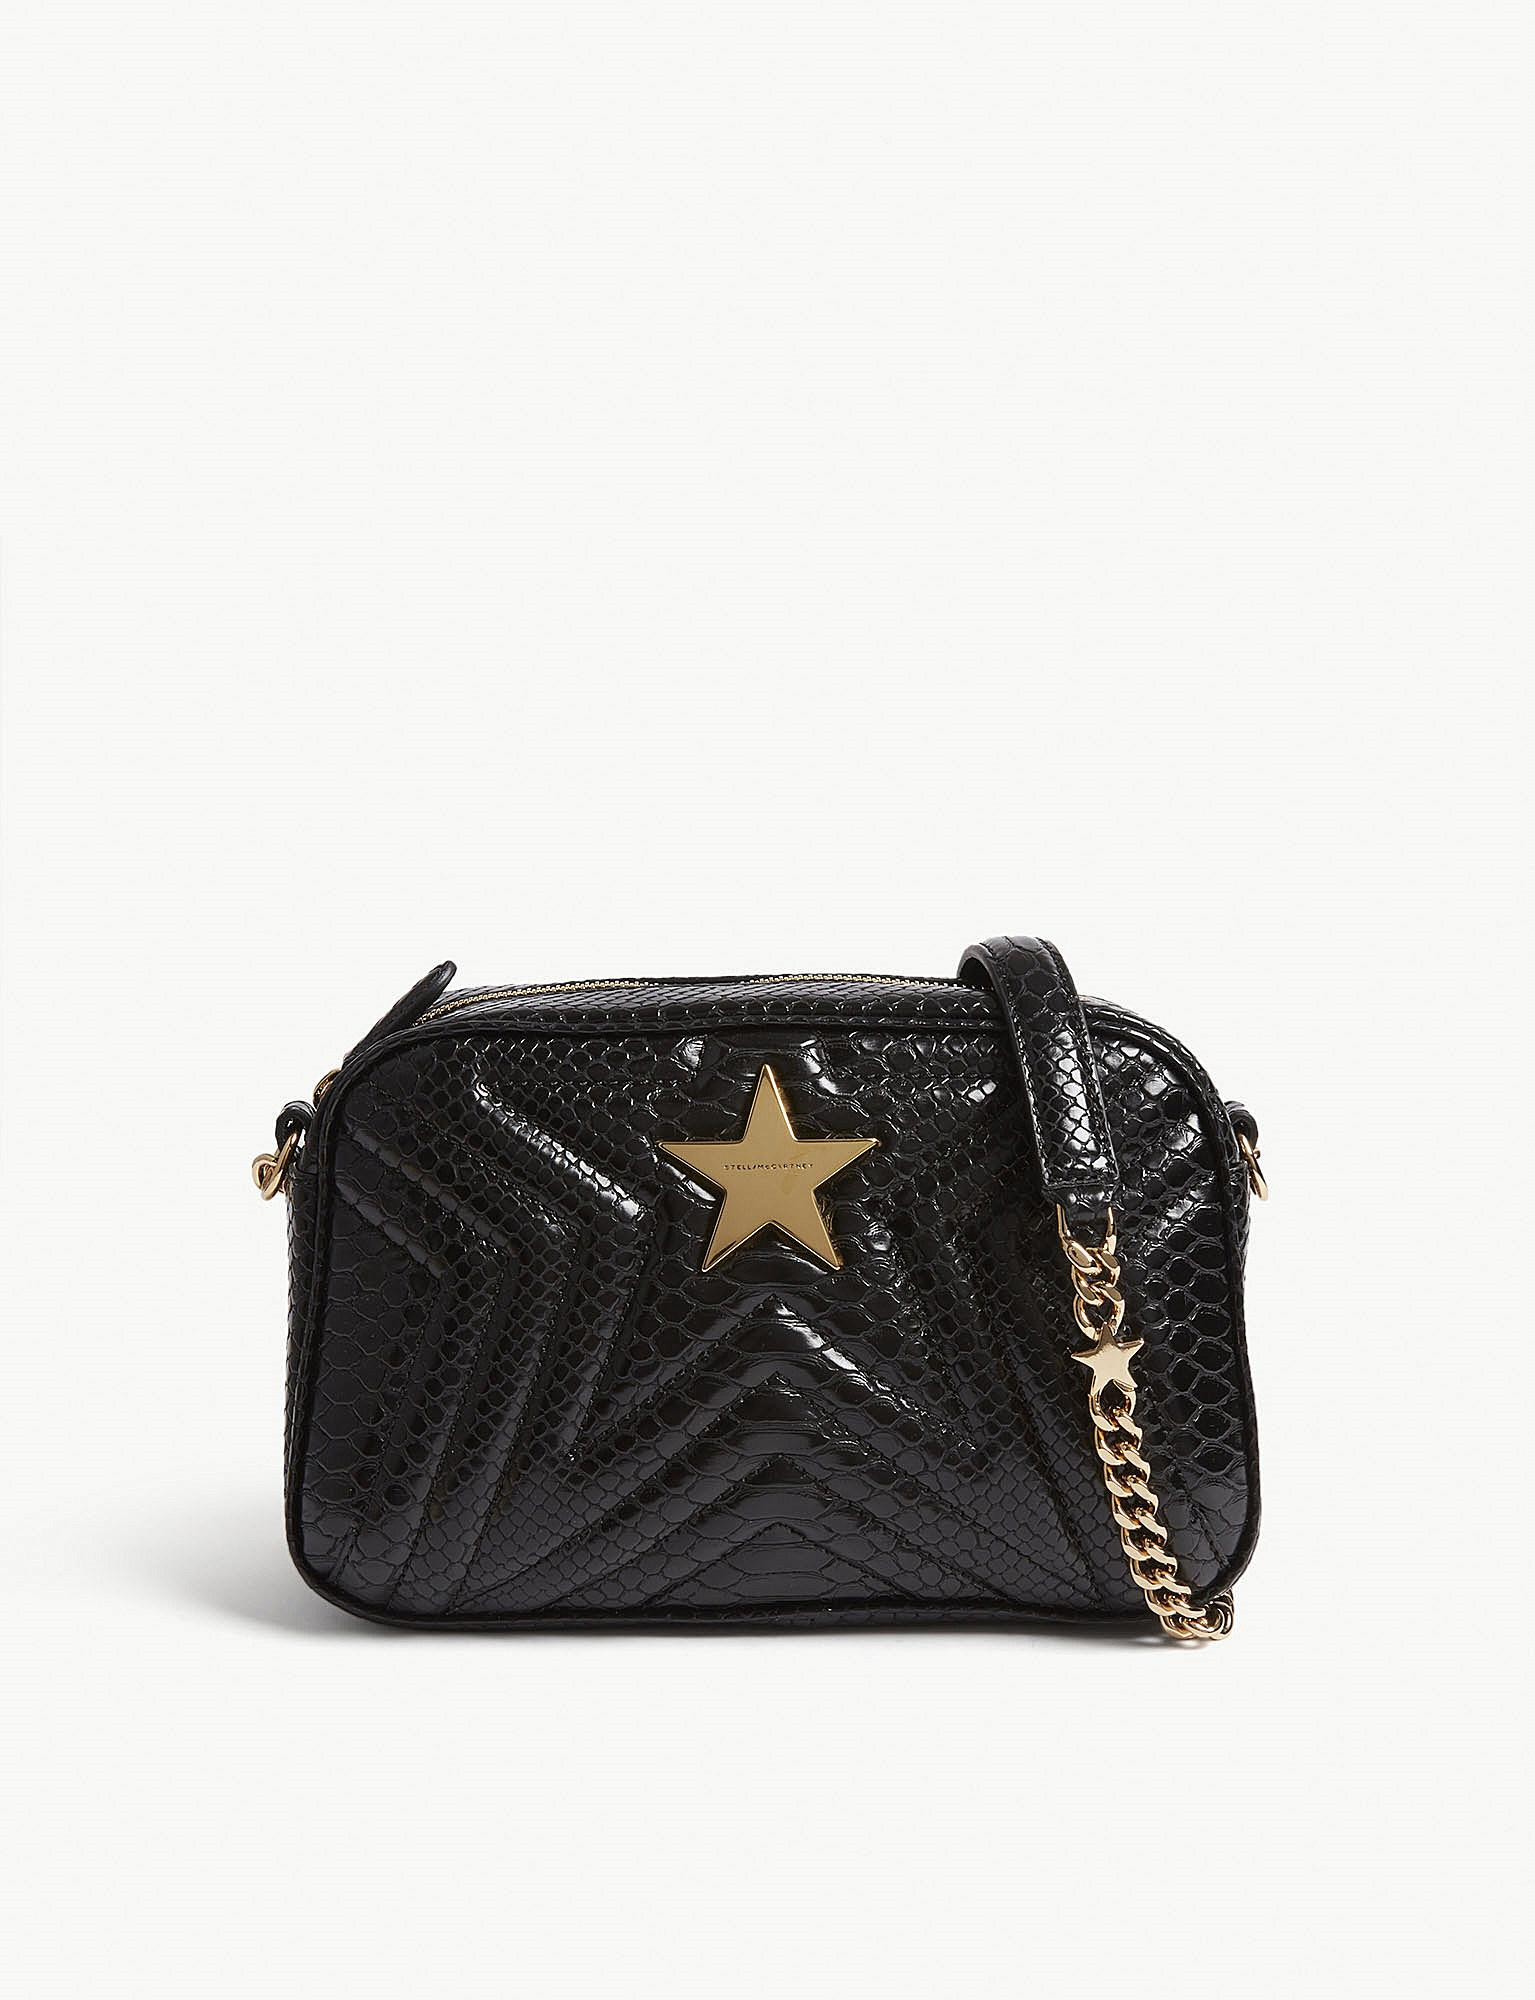 a1a0eca7f446 Lyst - Stella McCartney Quilted Python-embossed Star Camera Bag in Black